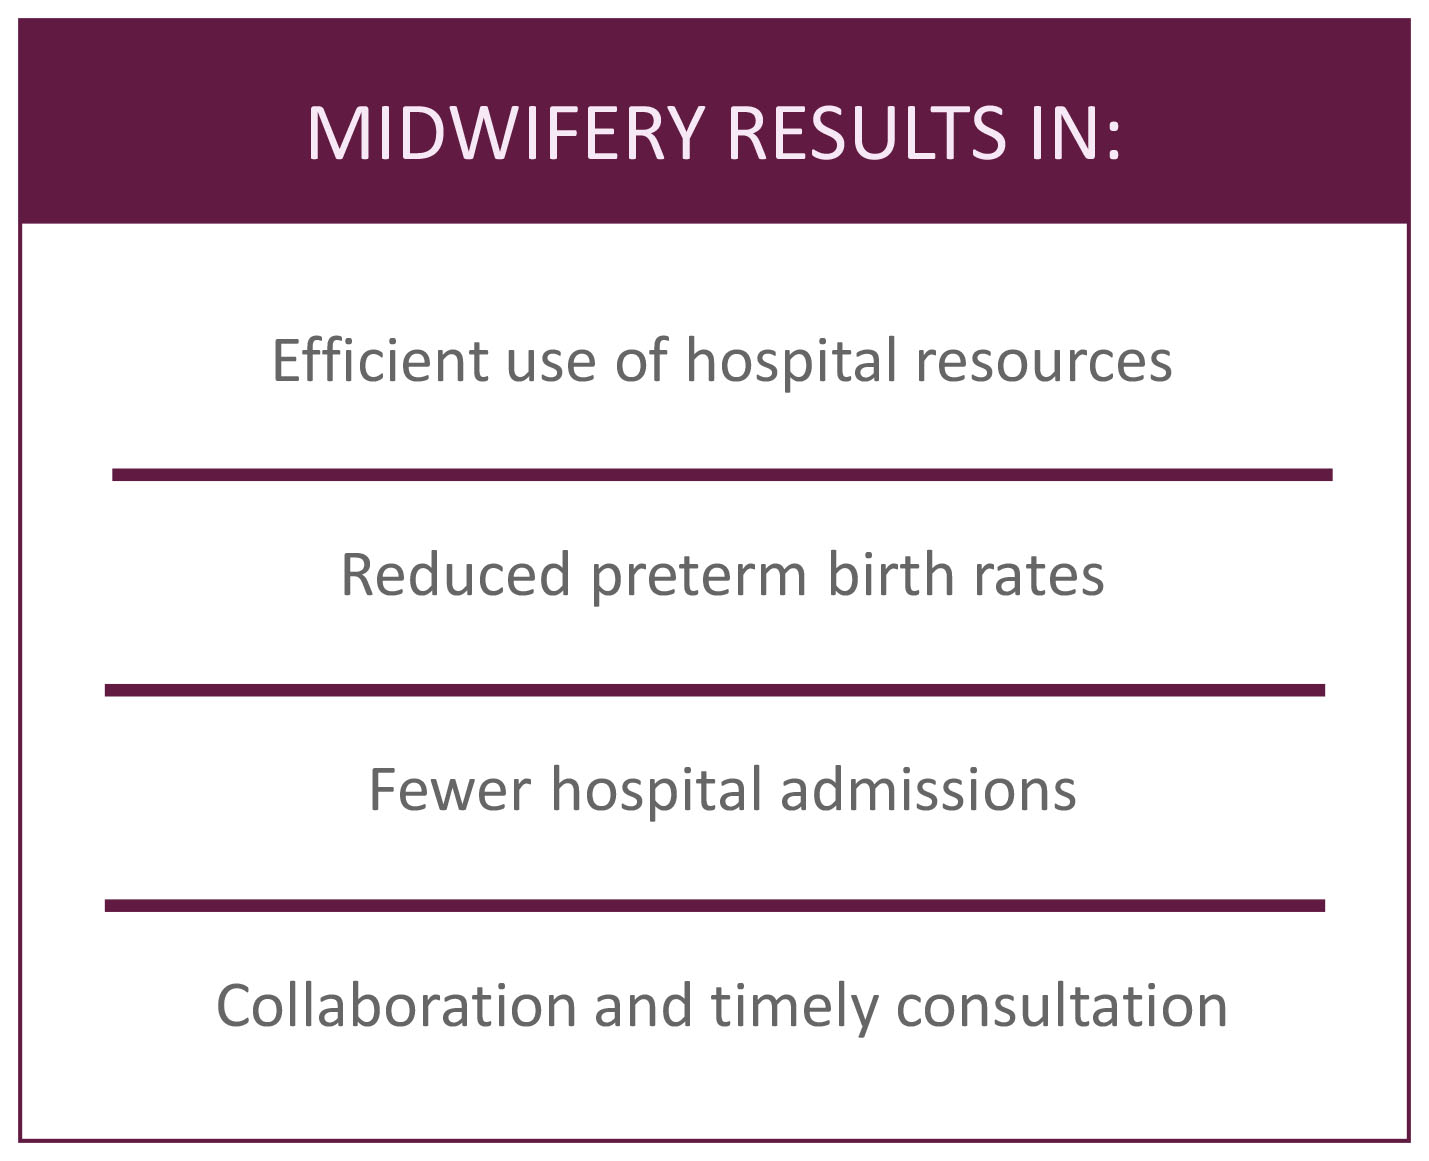 Midwives_results_-_1.jpg